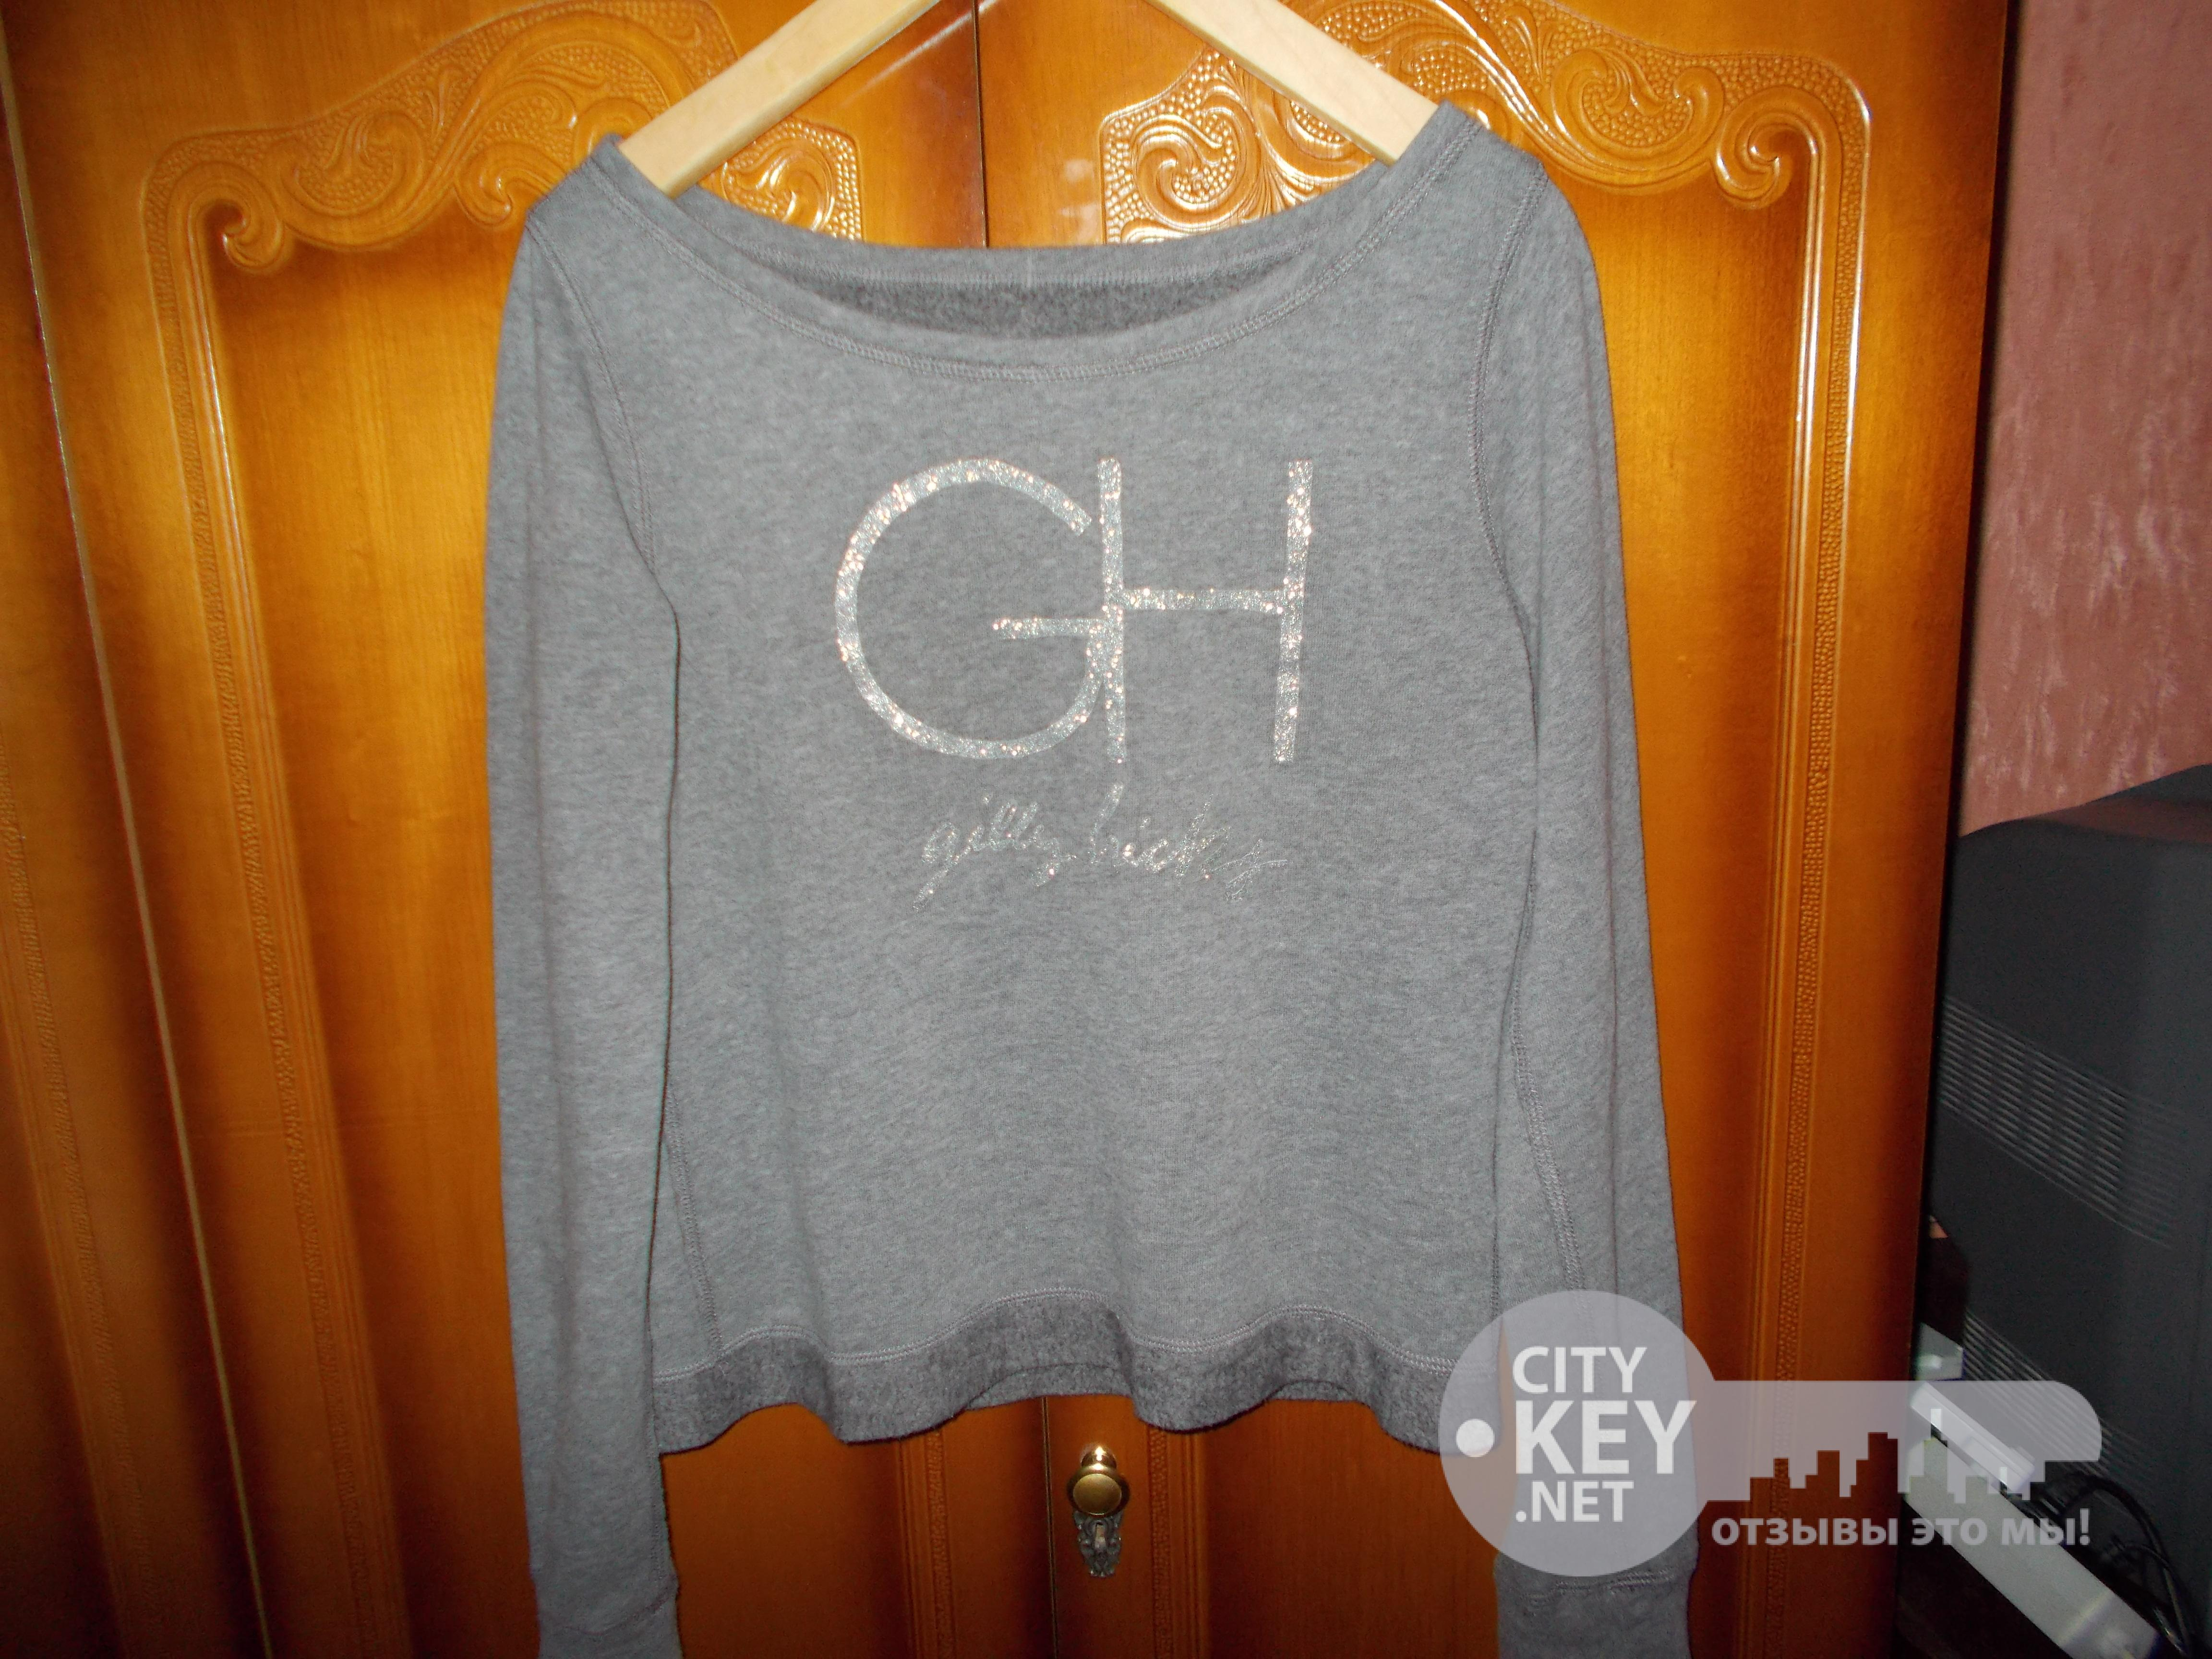 Gilly Hicks Cropped Graphic Sweatshirt -        CityKey.net